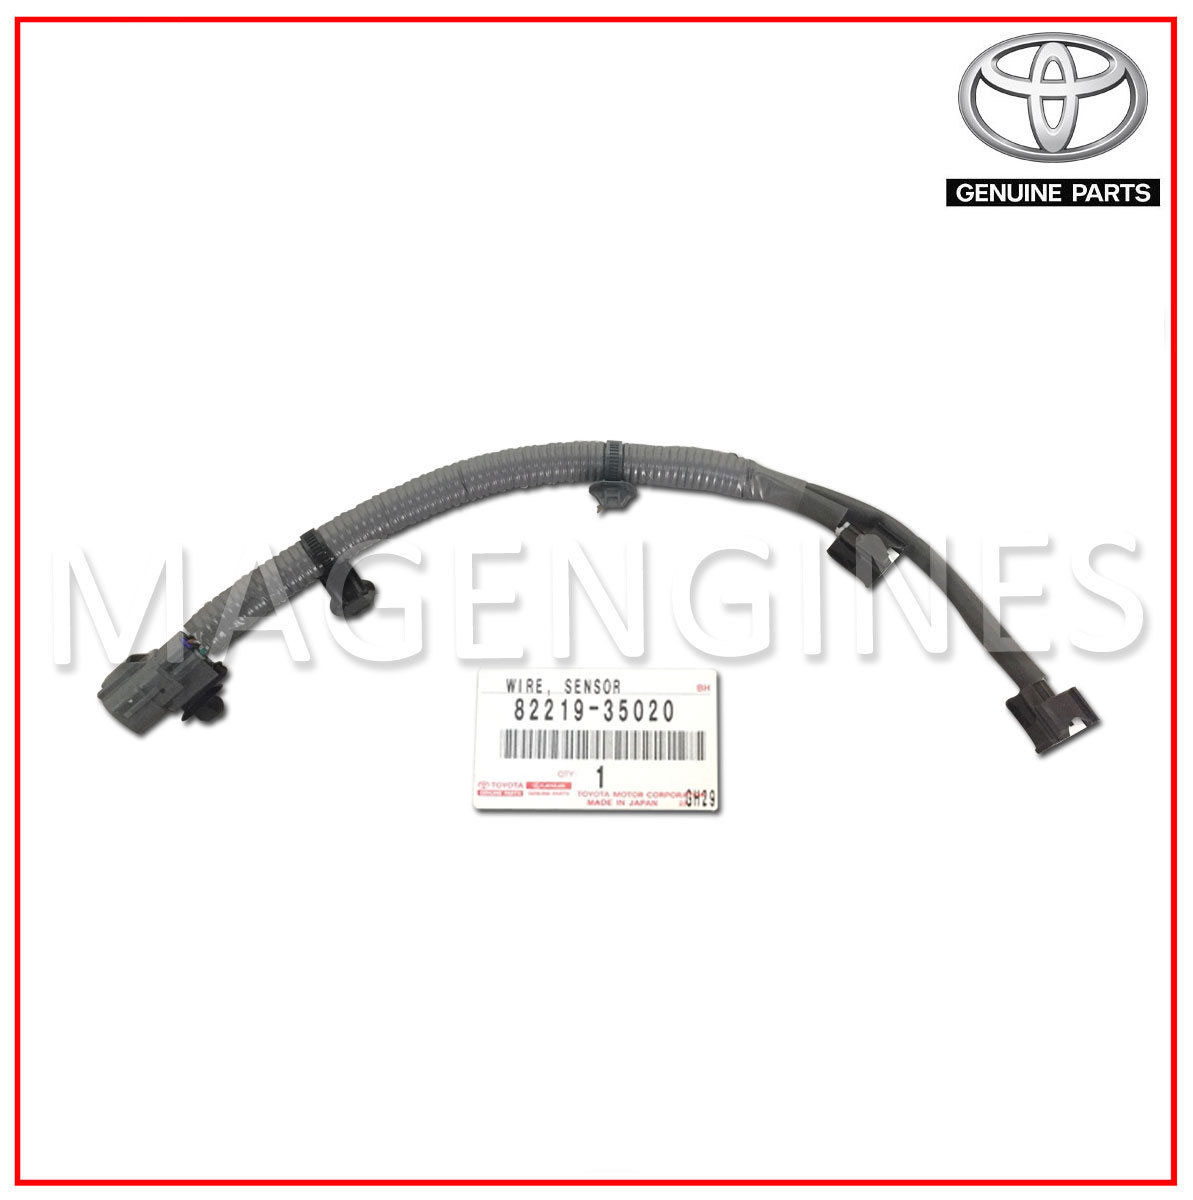 82219 35020 Toyota Genuine Knock Sensor Wire Harness Mag Engines